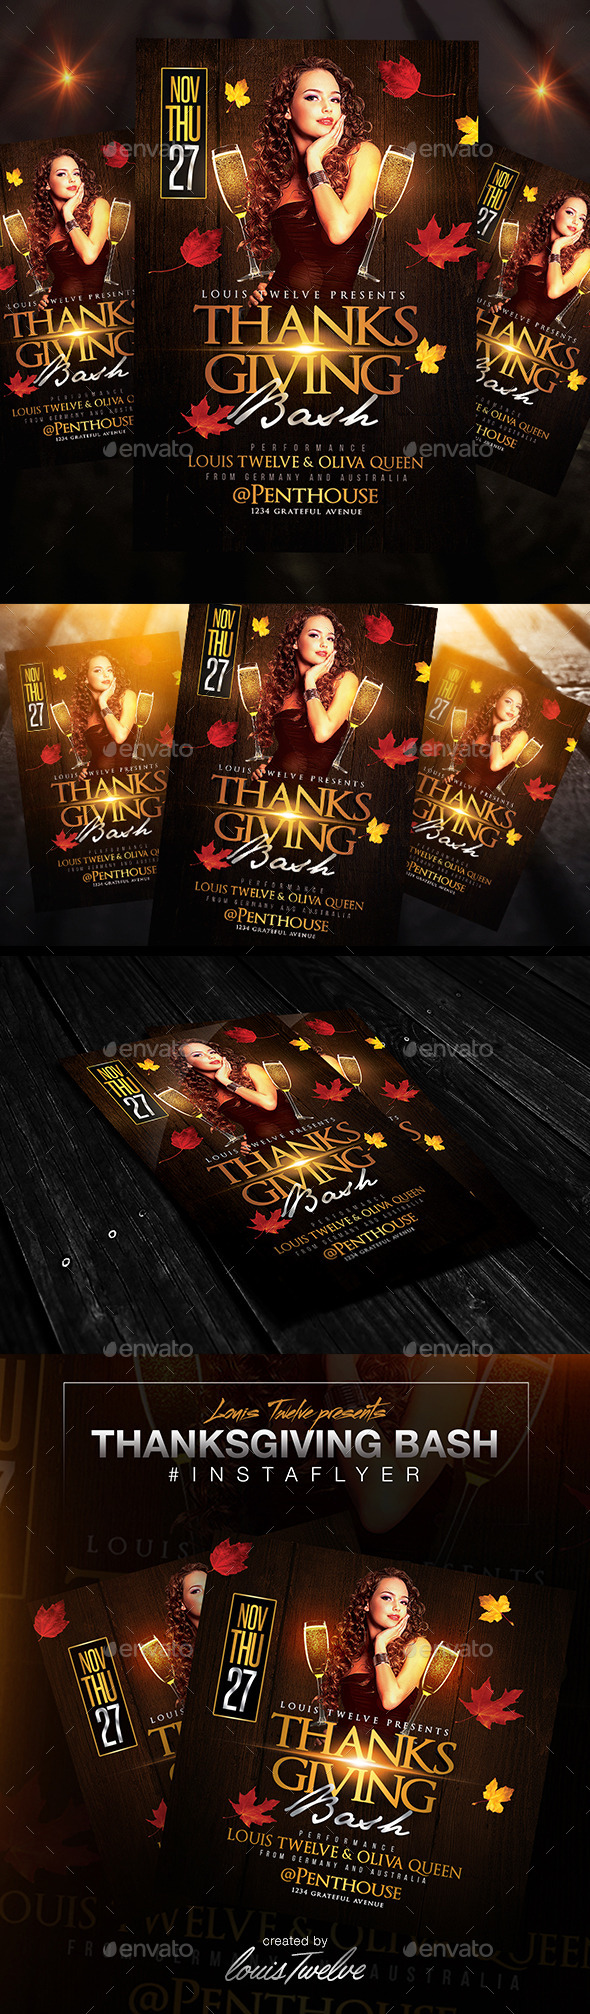 Thanksgiving Bash Flyer + Instapromo - Holidays Events